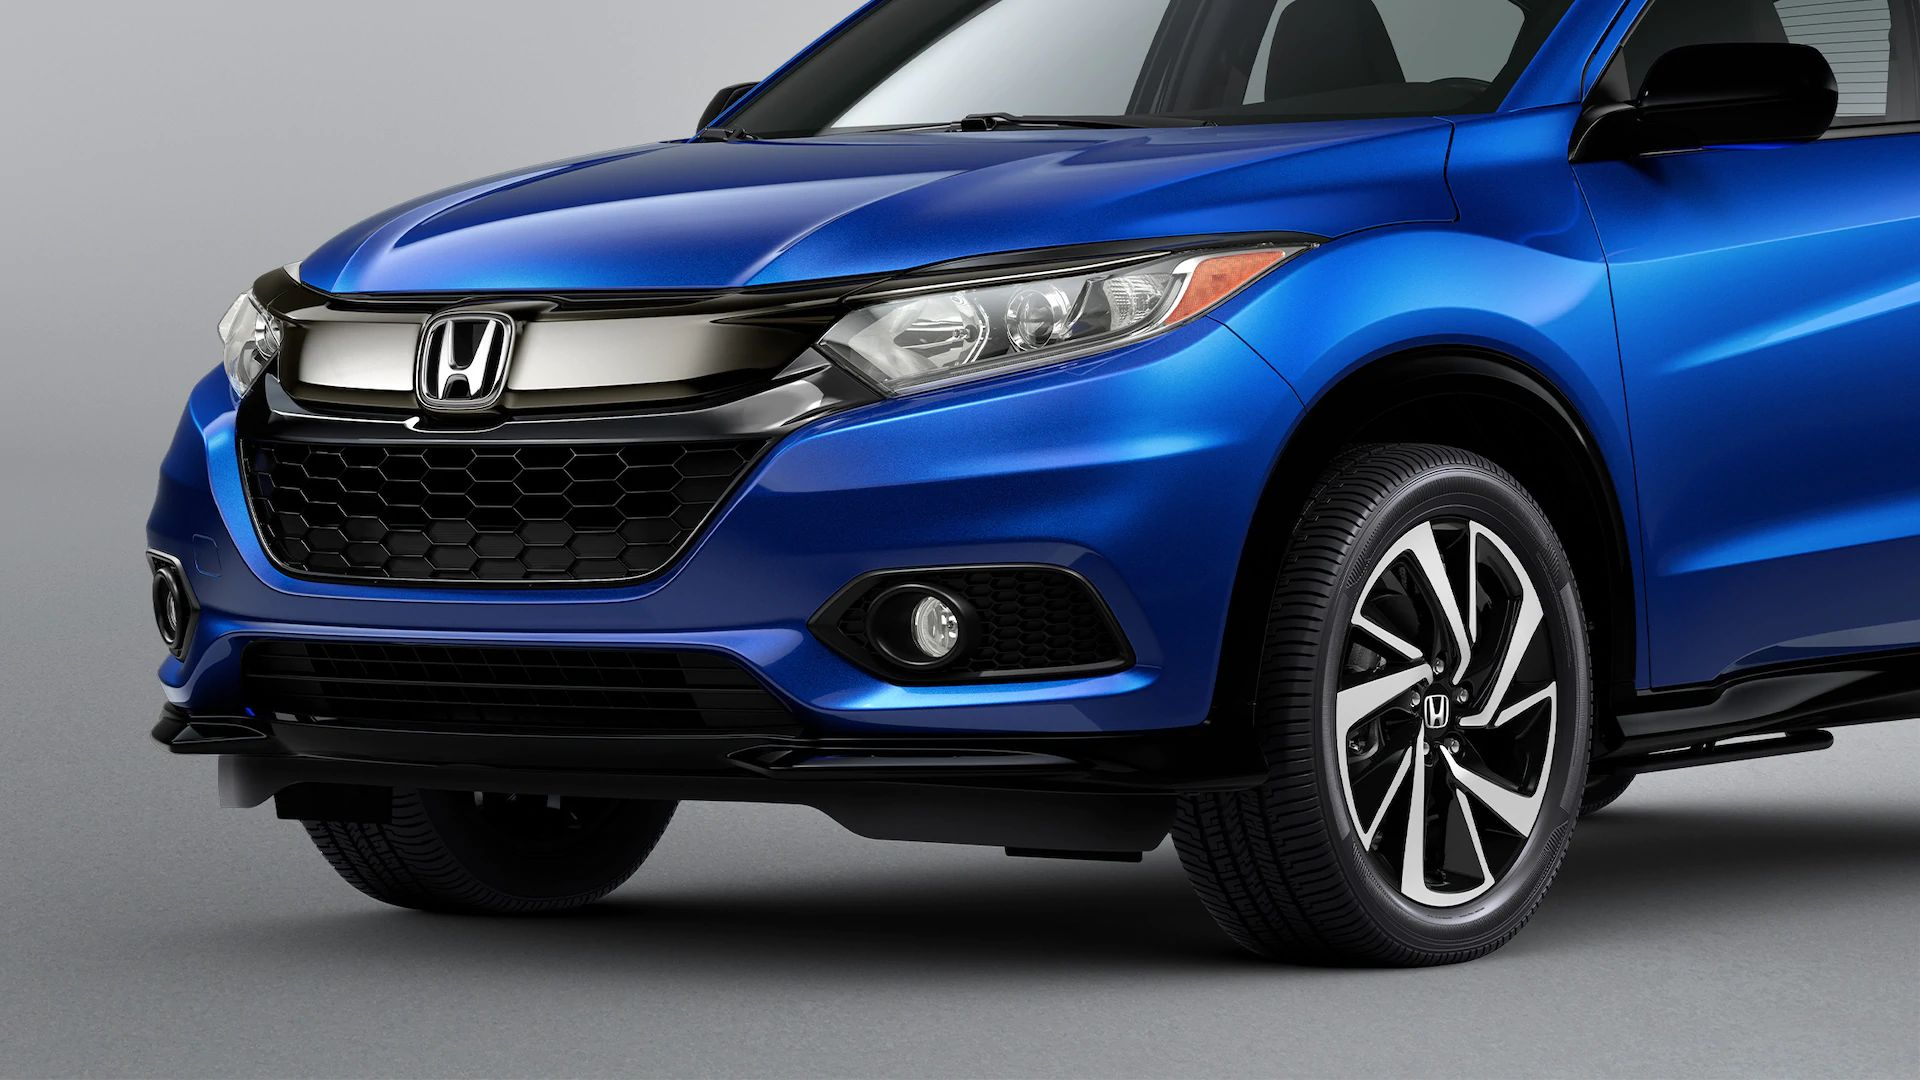 What is the MPG of the 2020 Honda HR-V?